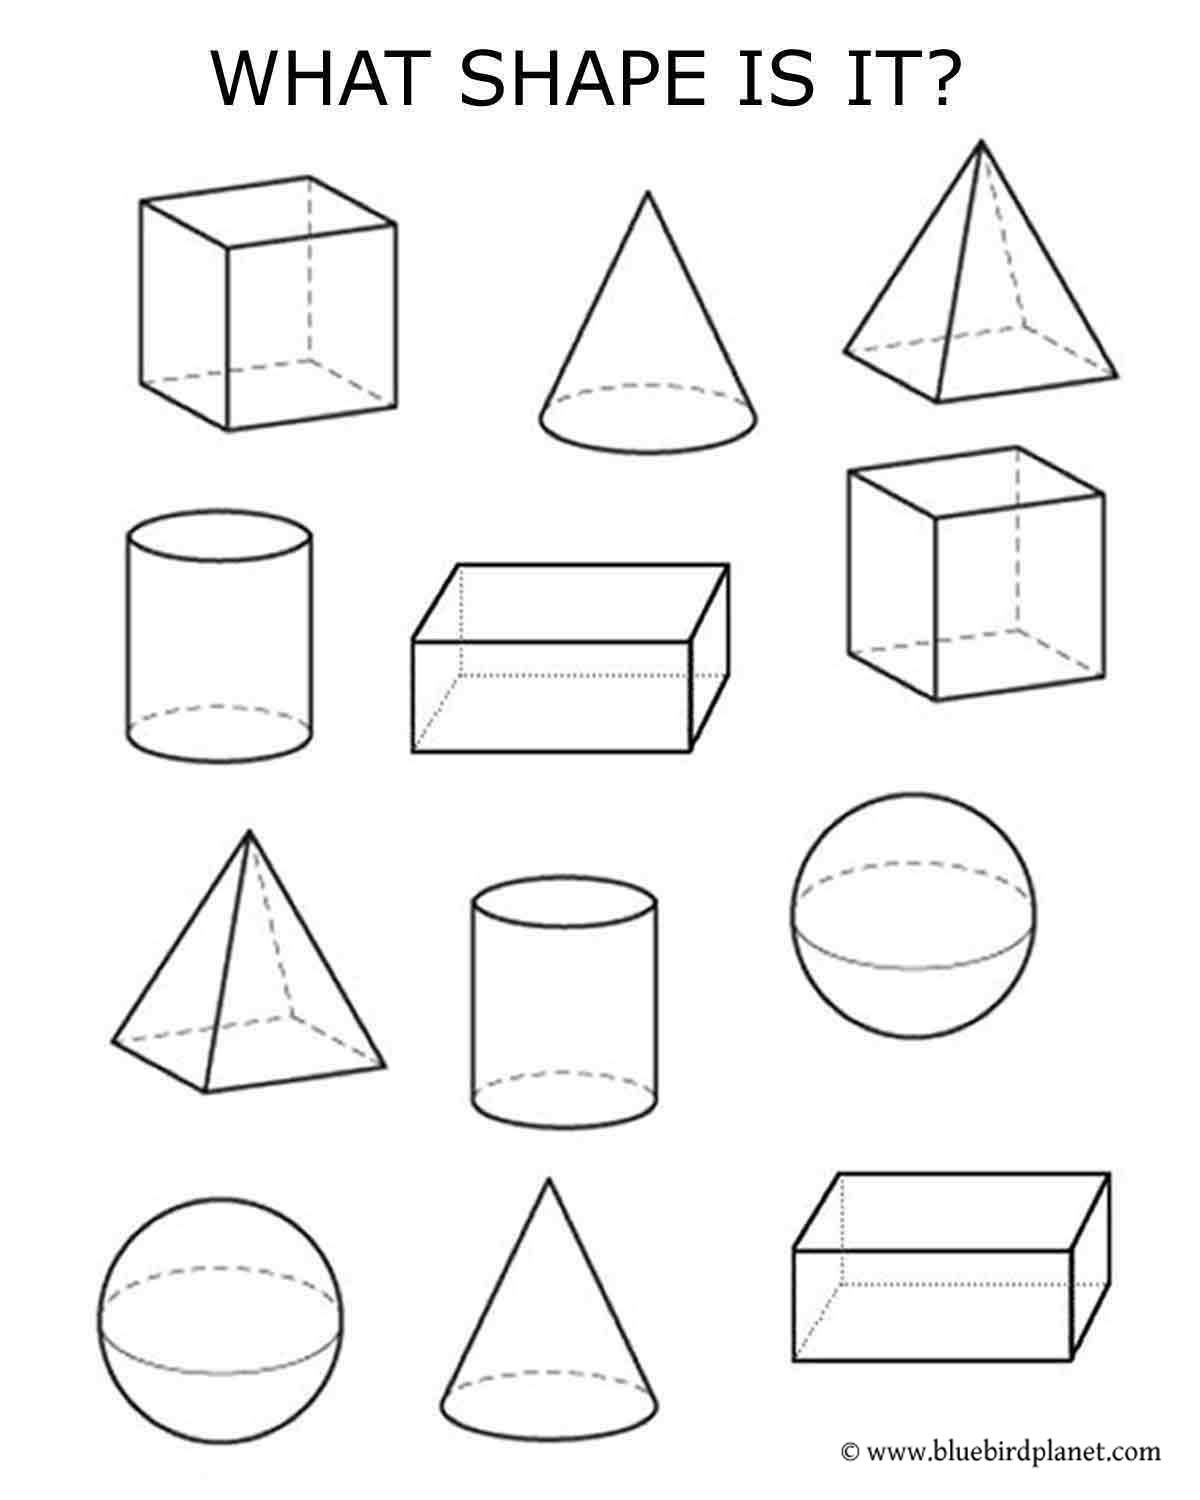 Free Printable Worksheets For Preschool Kindergarten 1st 2nd 3rd 4th 5th Grades 3d Shapes